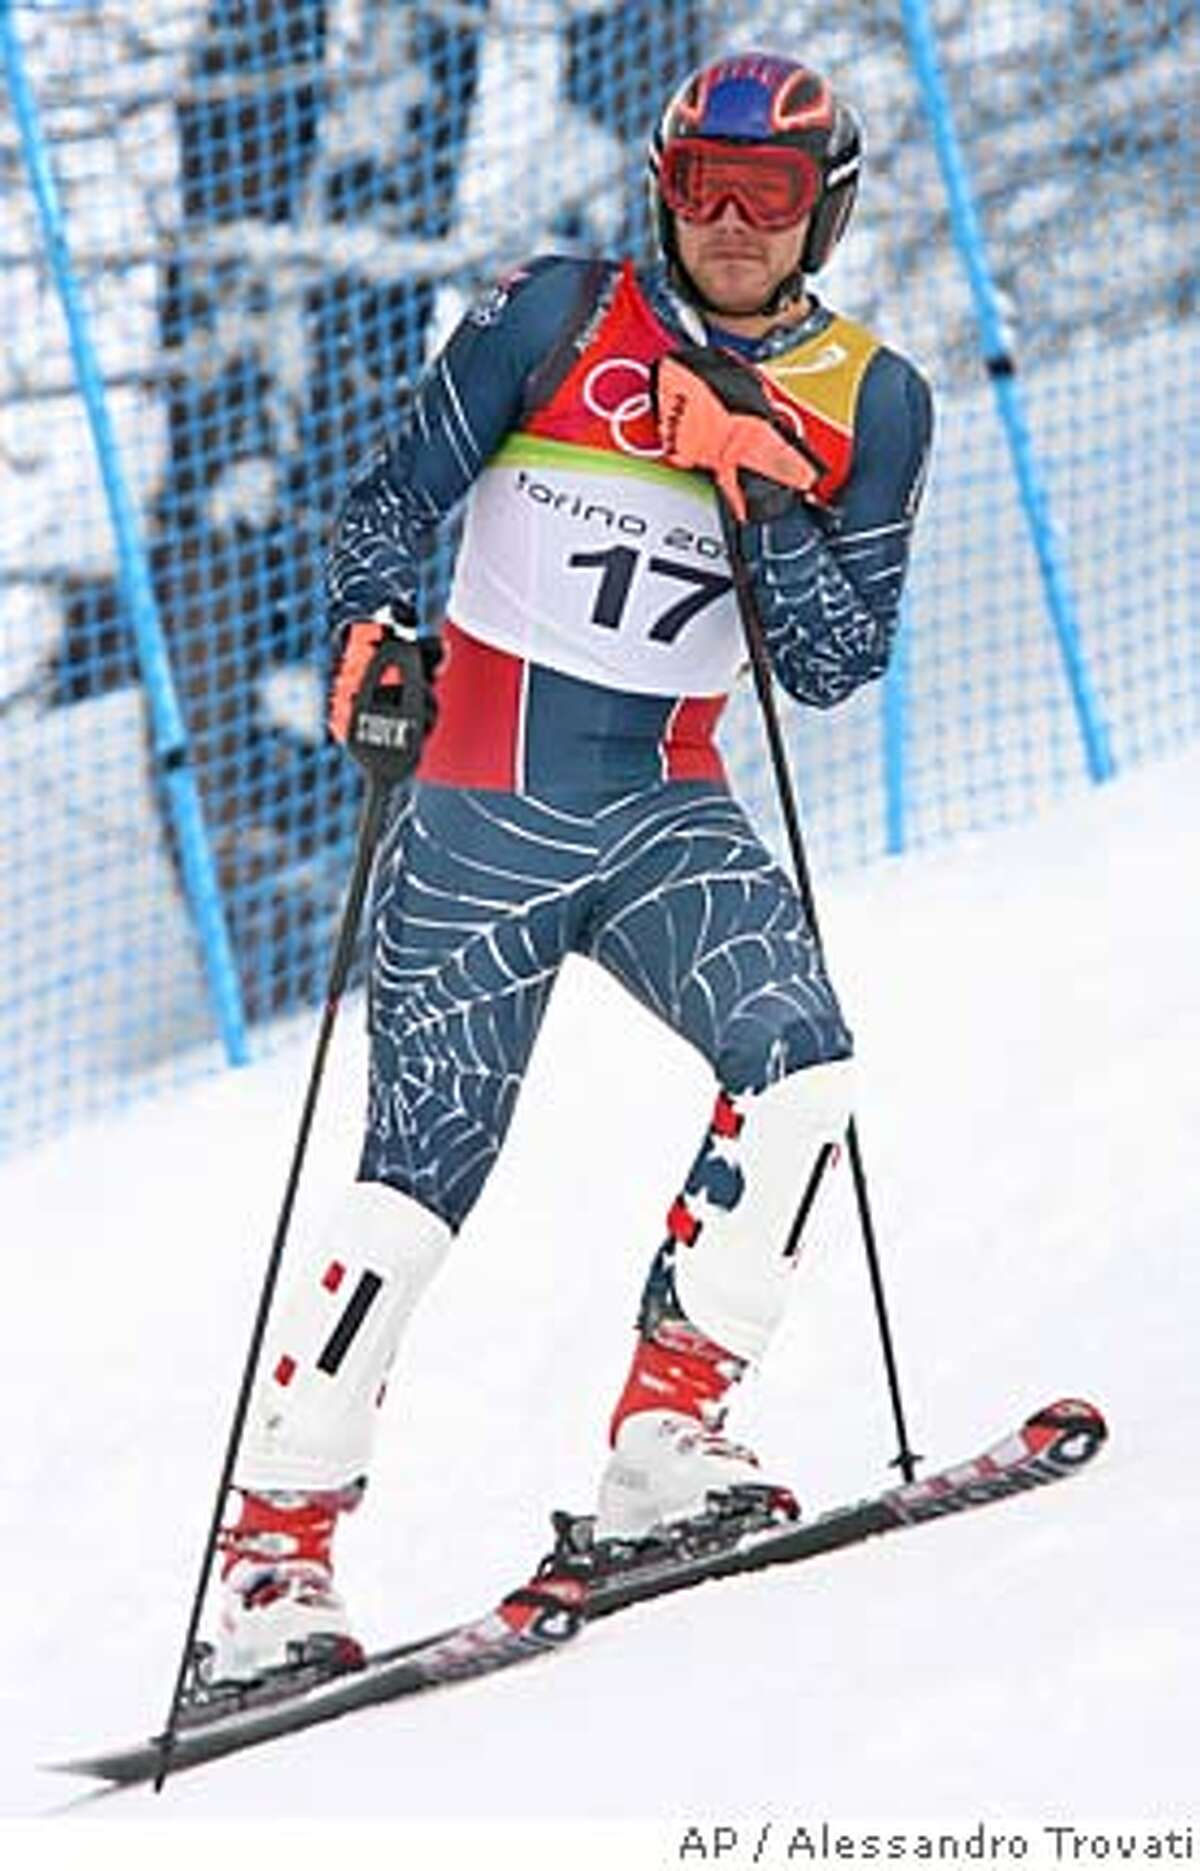 Bode Miller of the United States stands on the side of the course after skiing out on the first run of the Men's Slalom at the Turin 2006 Winter Olympic Games in Sestriere Colle, Italy Saturday Feb. 25, 2006. (AP Photo/Alessandro Trovati)